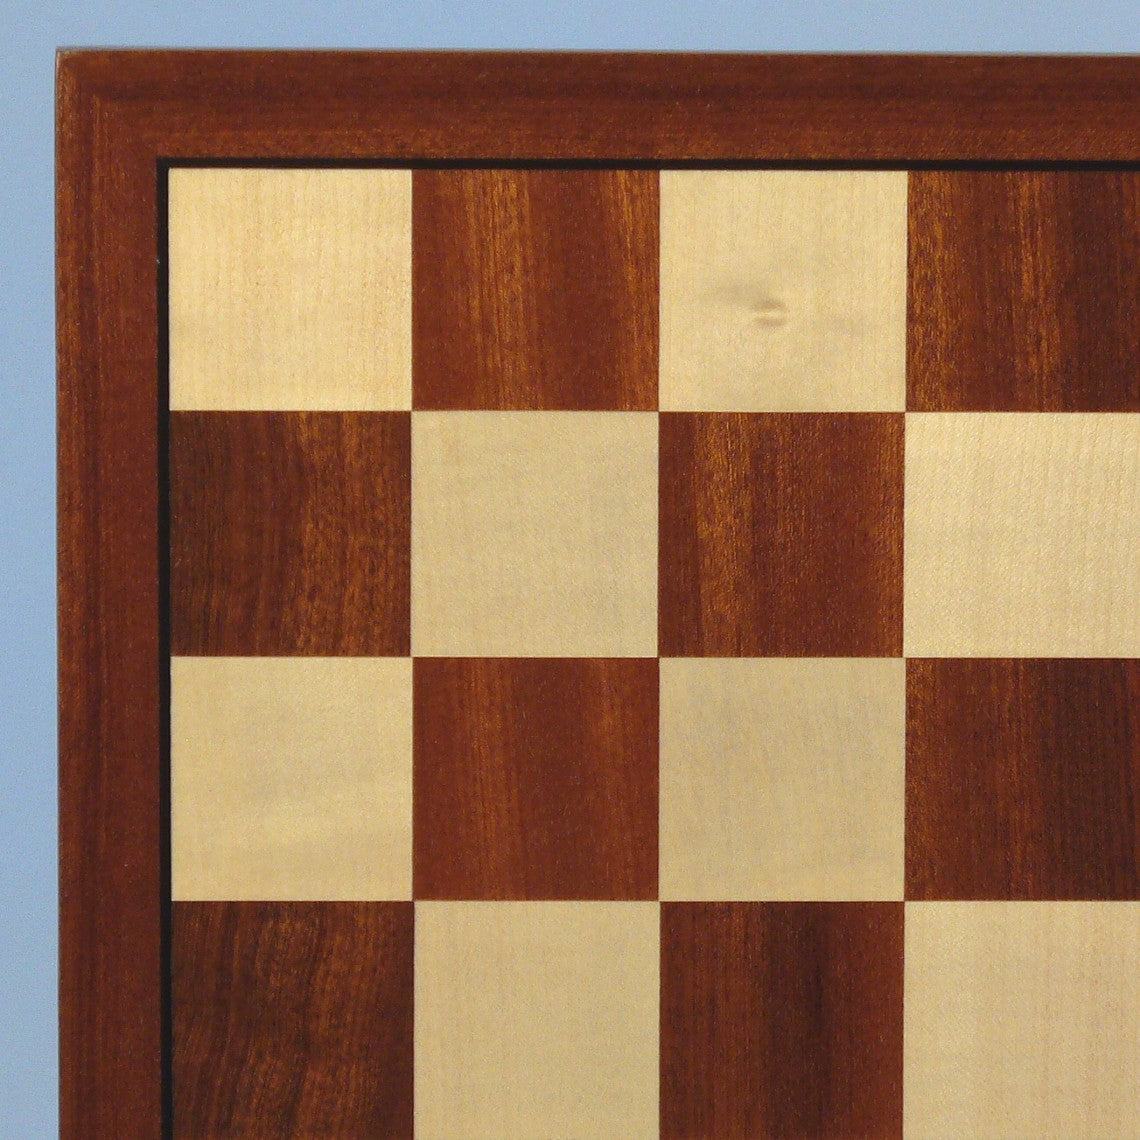 World War 2 Chess Pieces with Sapele Maple Veneer Board